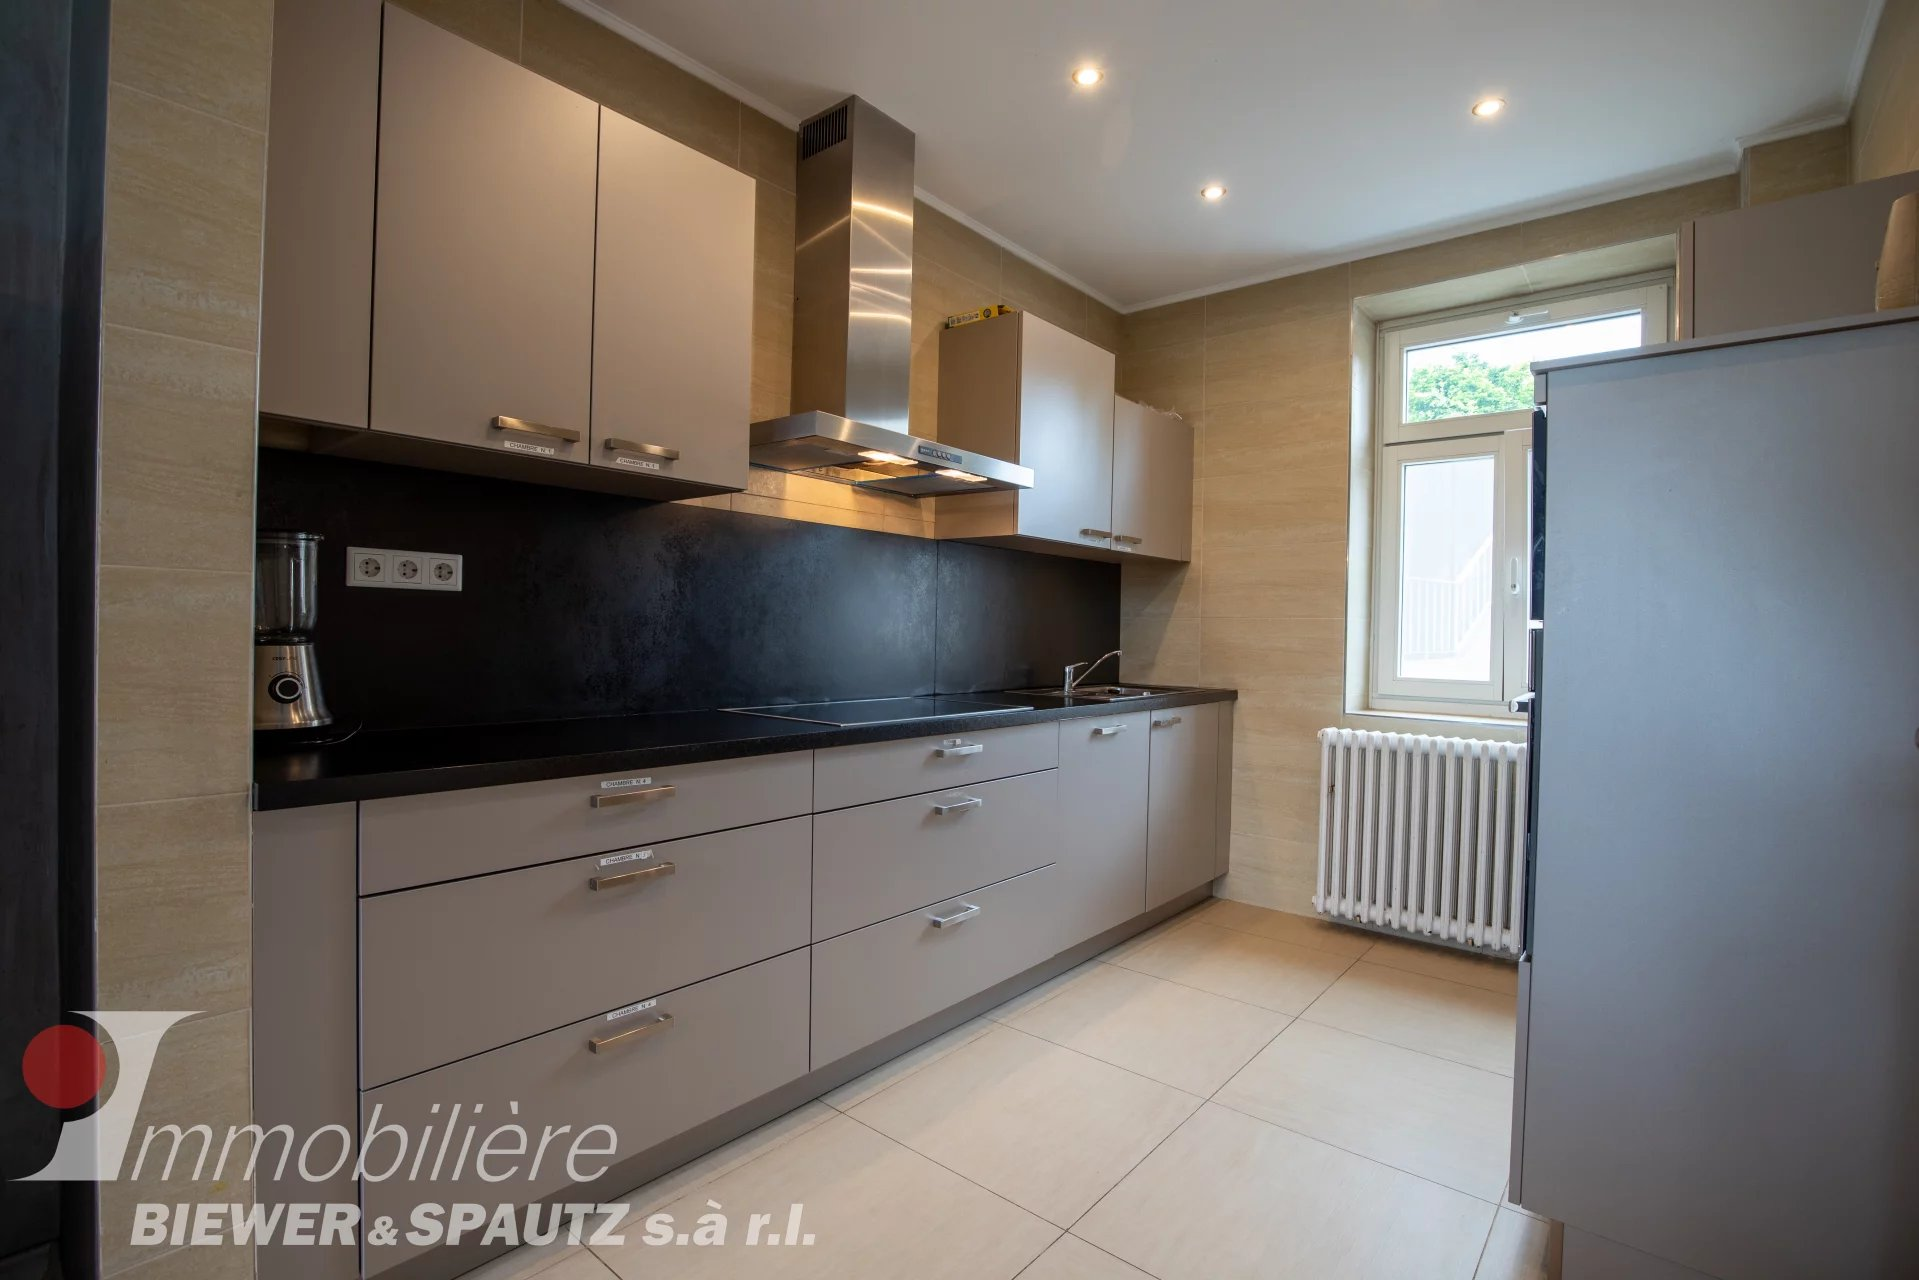 FOR SALE - Investment property with 6 bedrooms in Wecker